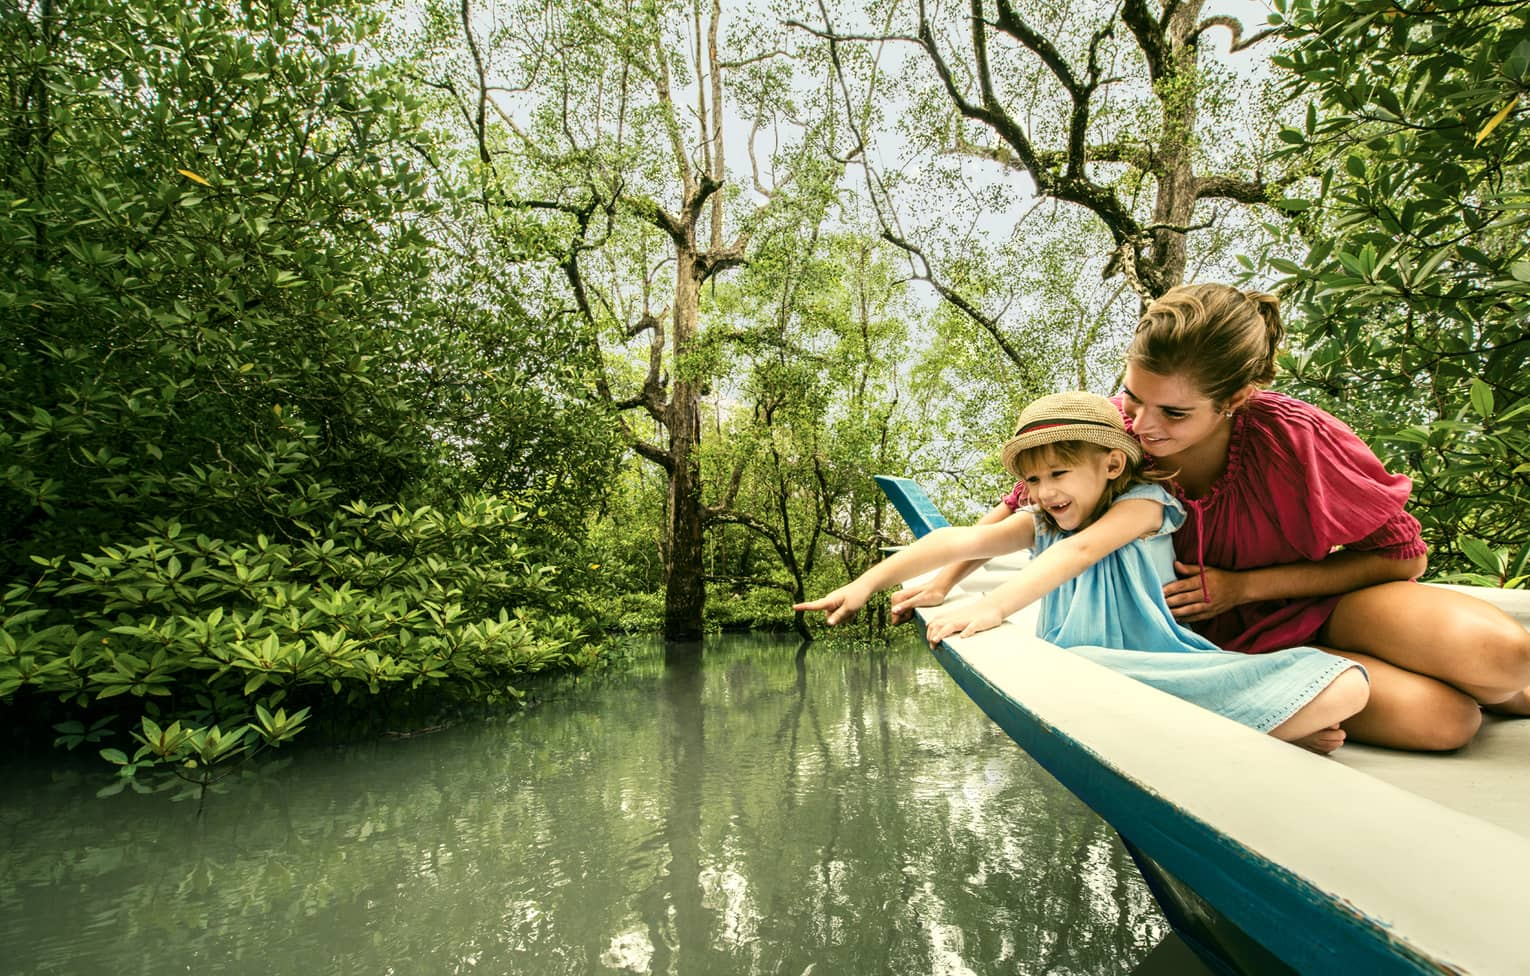 Mom, young daughter in back of wood canoe look into river